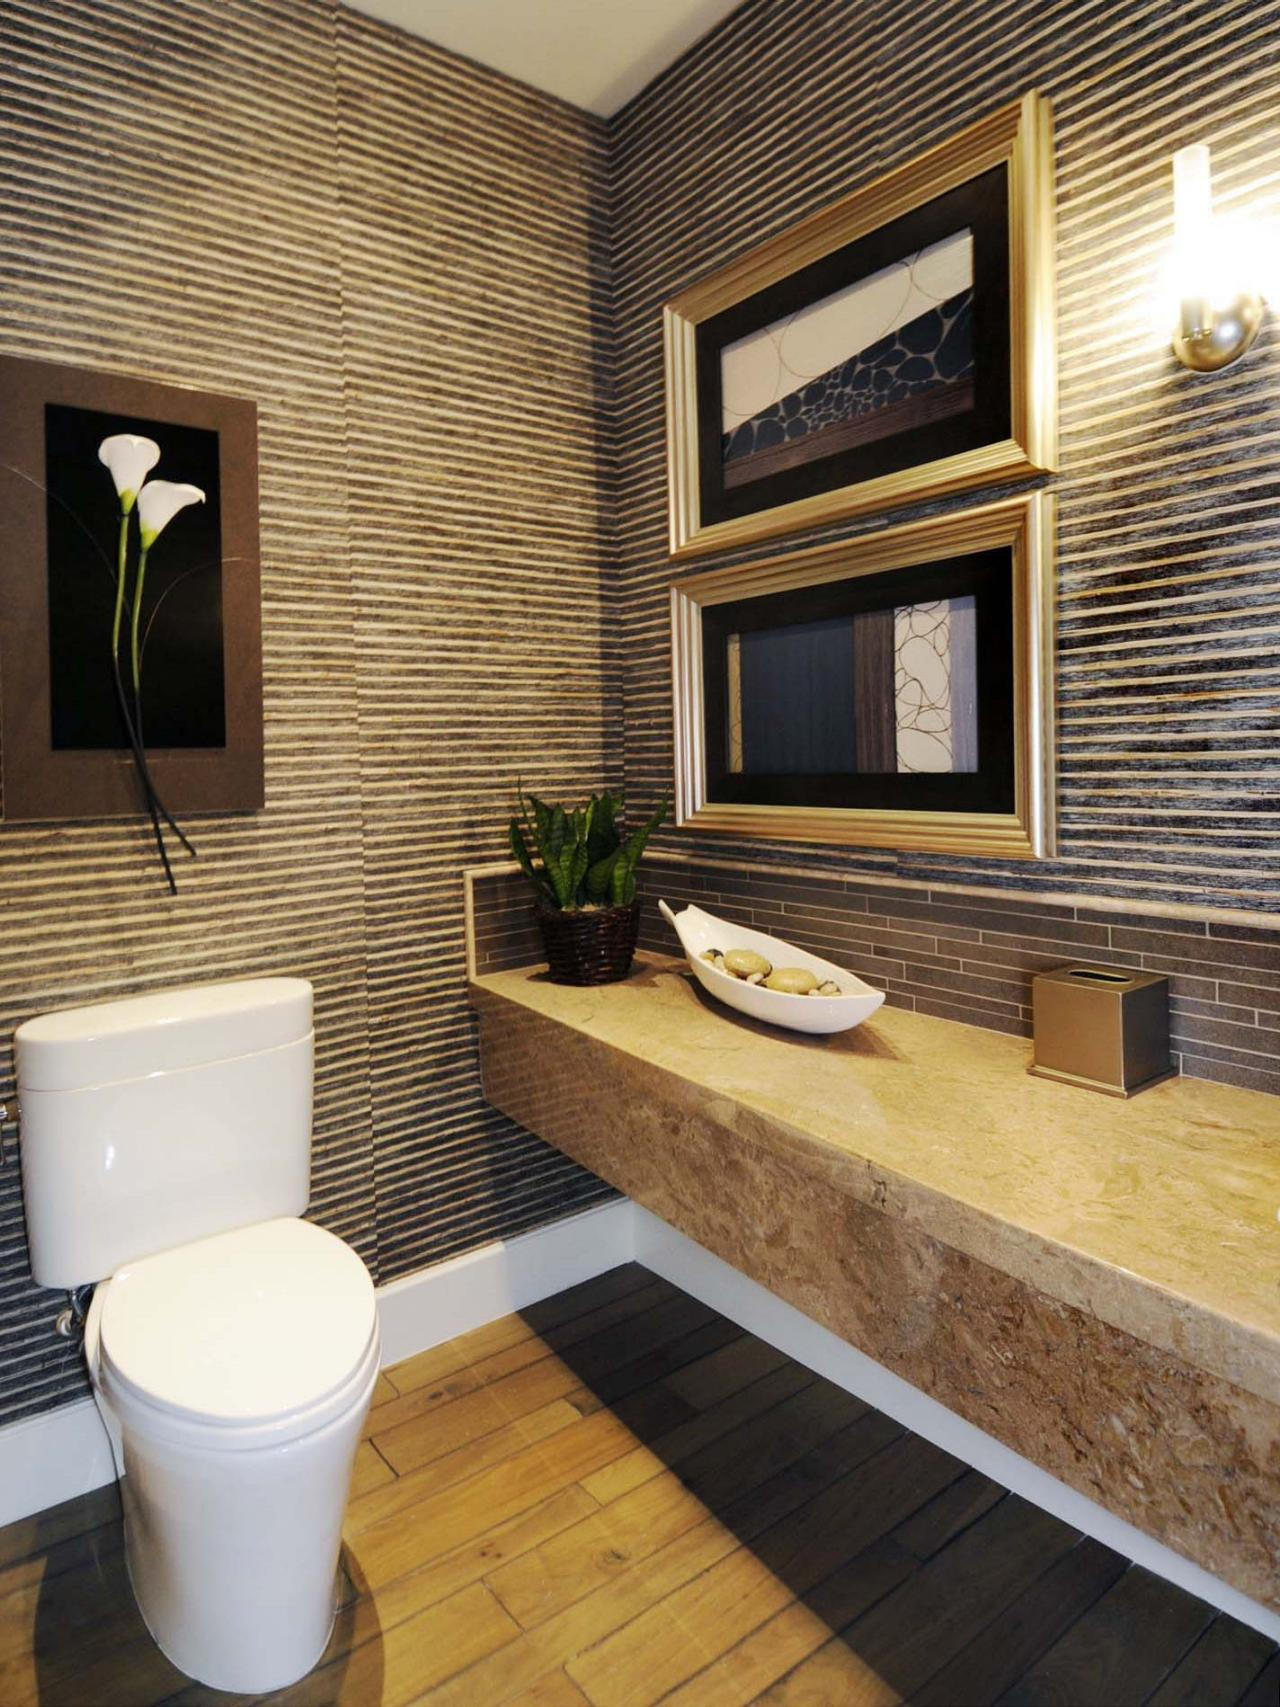 image quarter bamboo bathroom stool powder room stripes designlens bamboo wall bath sxjpgrendhgtvcom powder room stripes